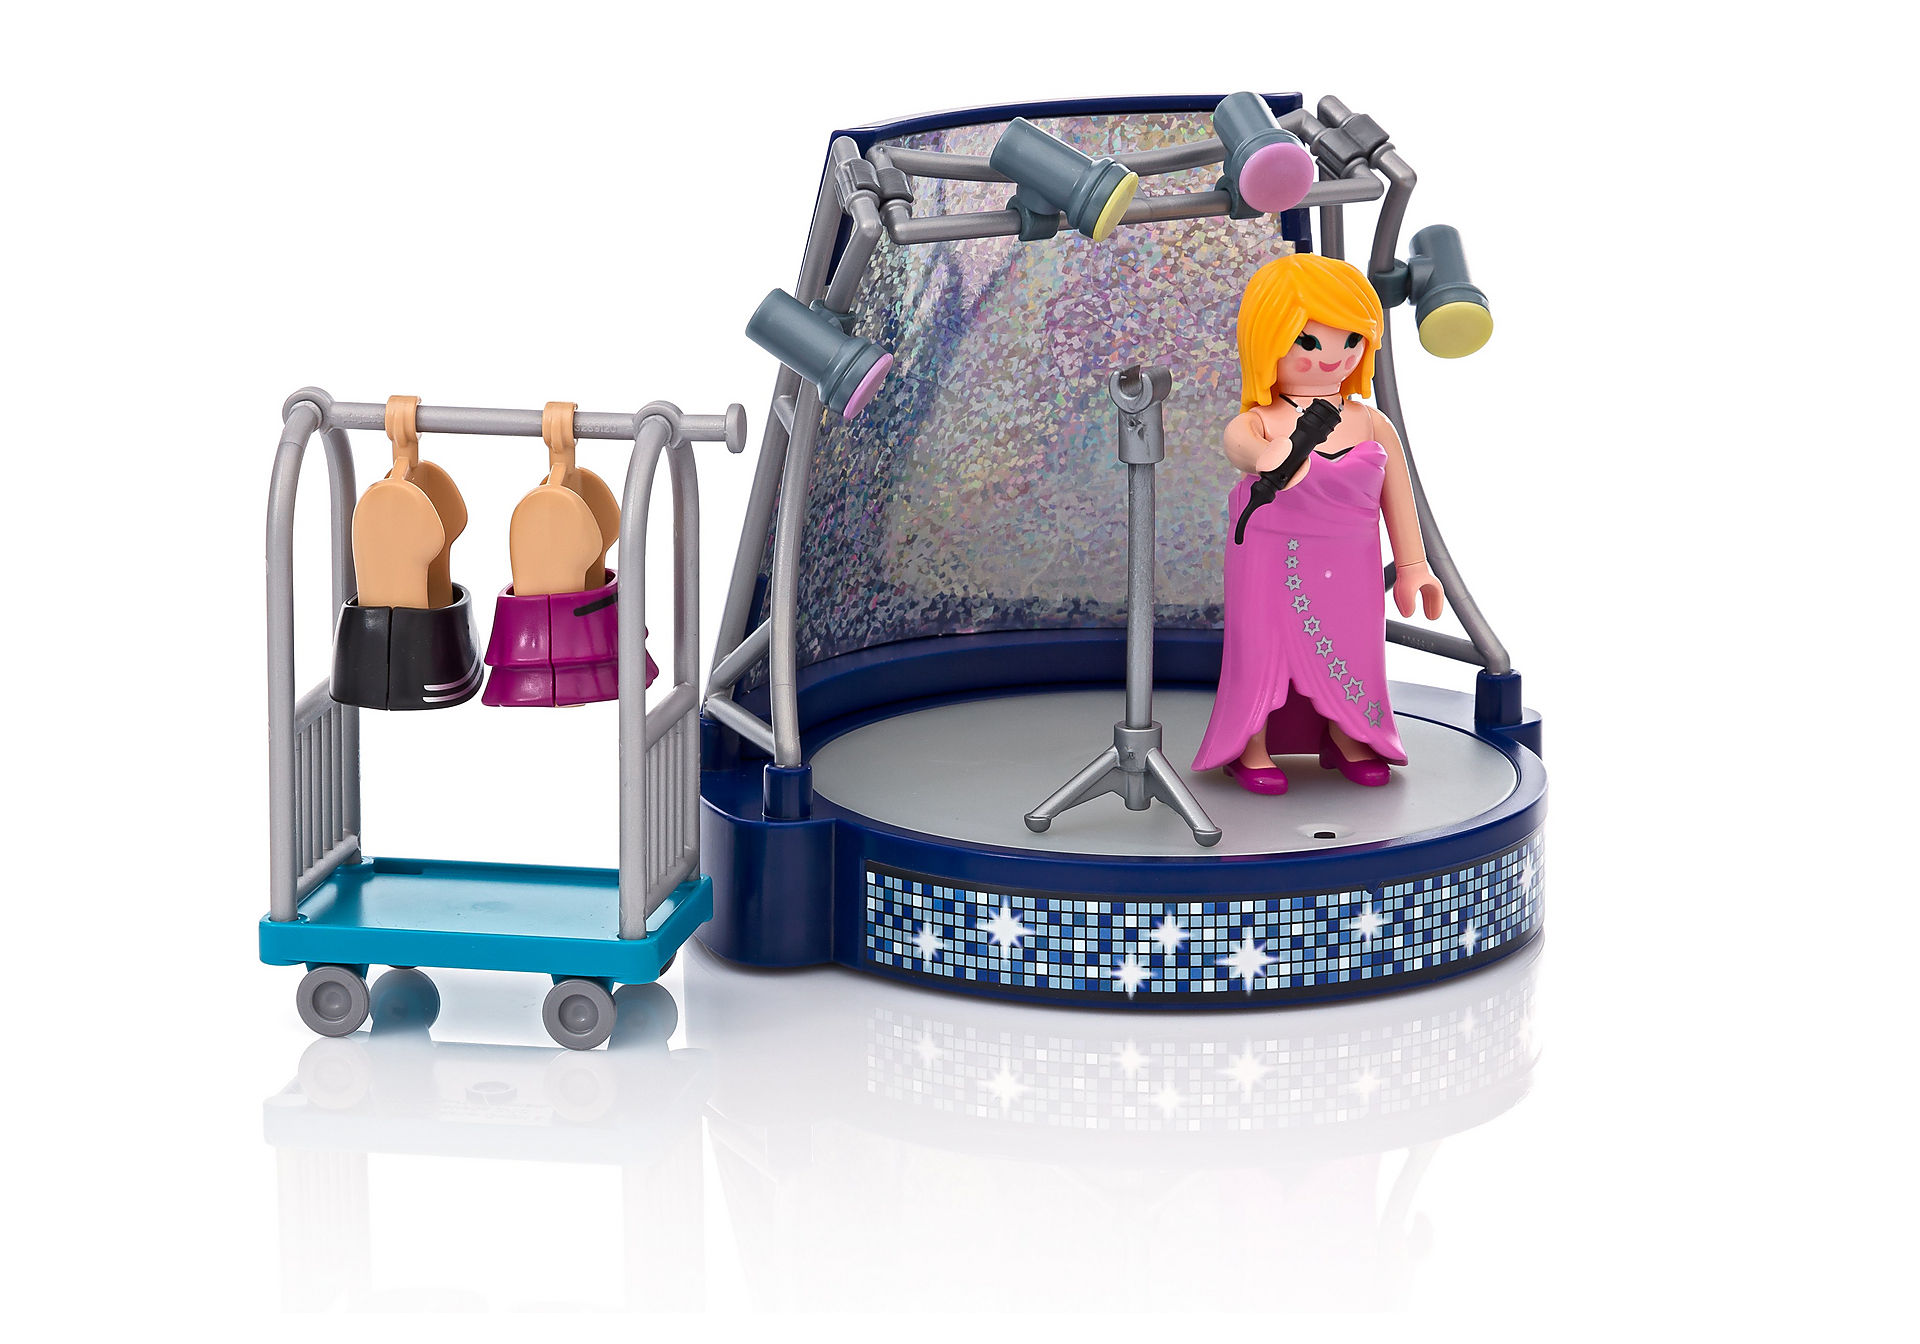 360degree image 38